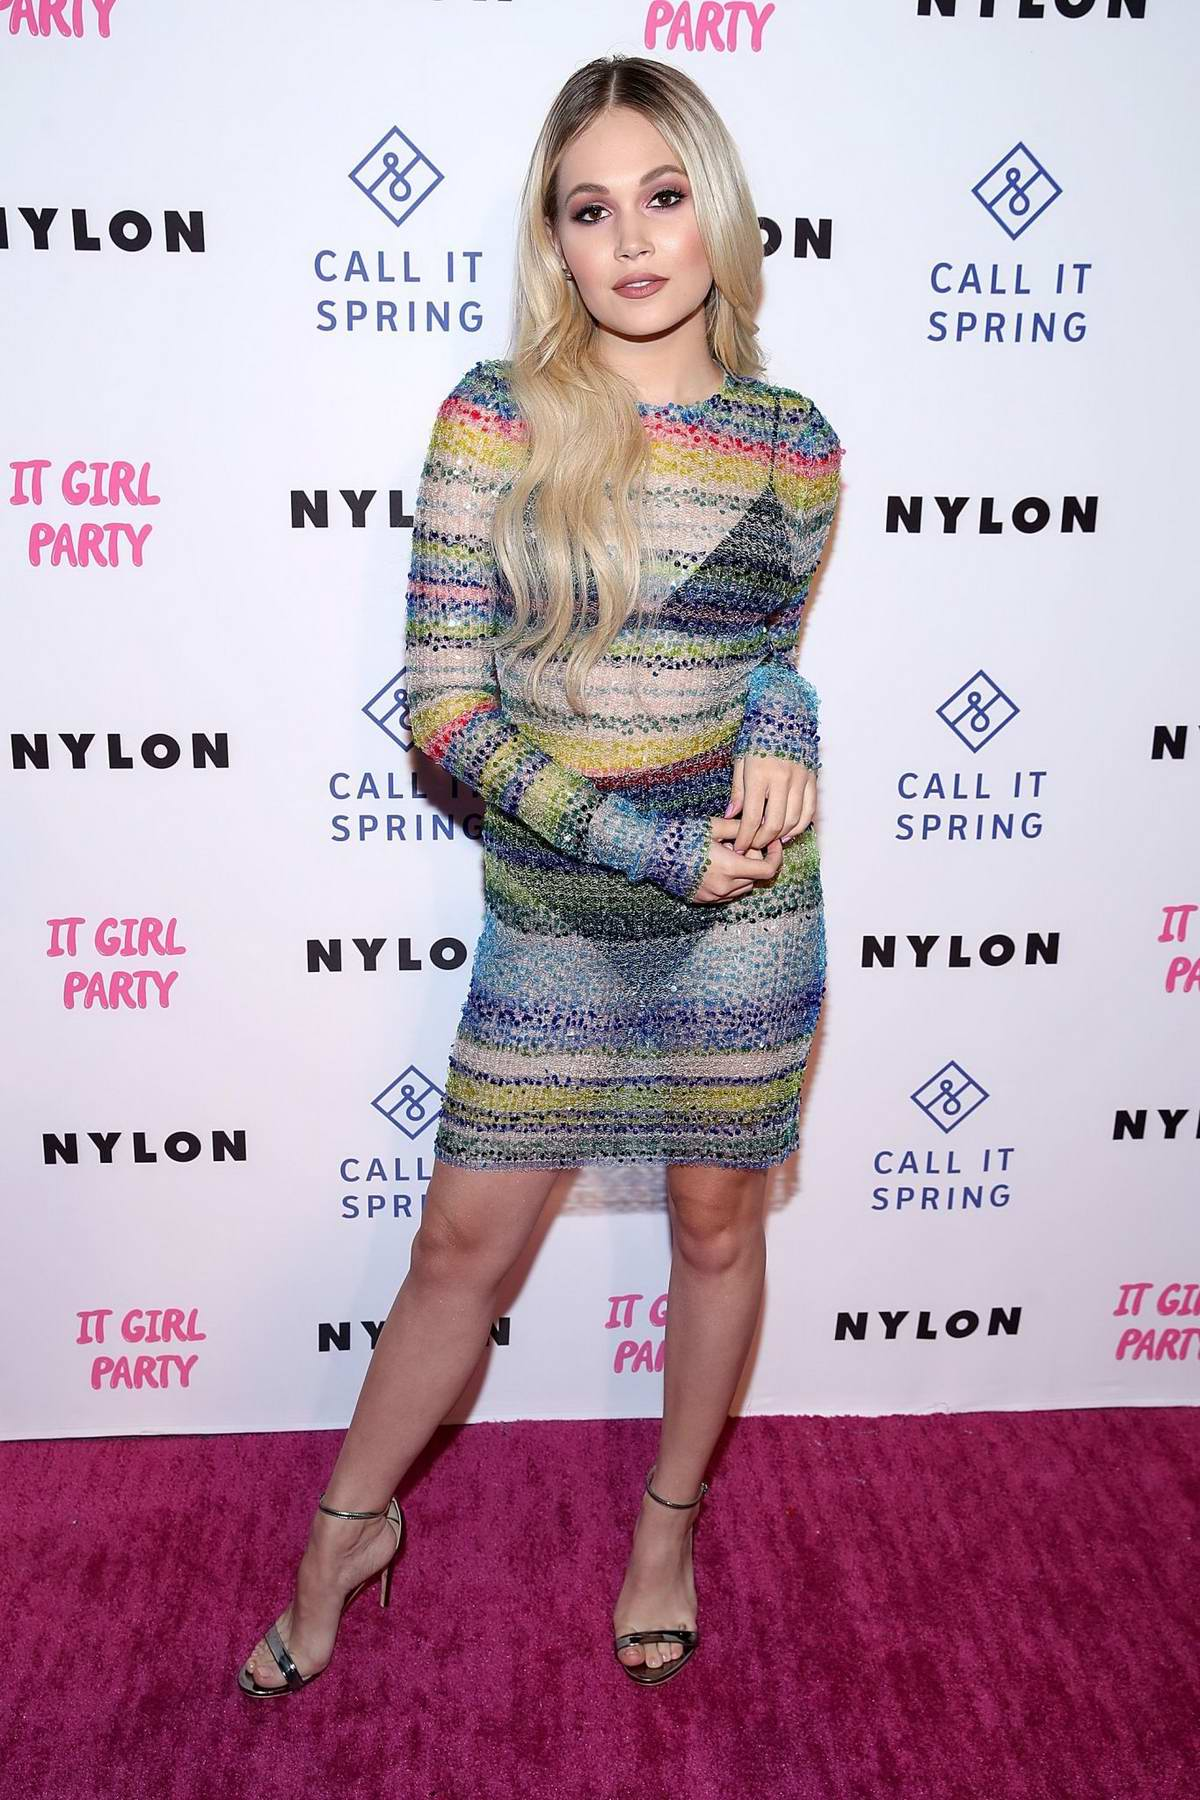 Kelli Berglund attends NYLON's Annual It Girl Party at The Ace Hotel in Los Angeles